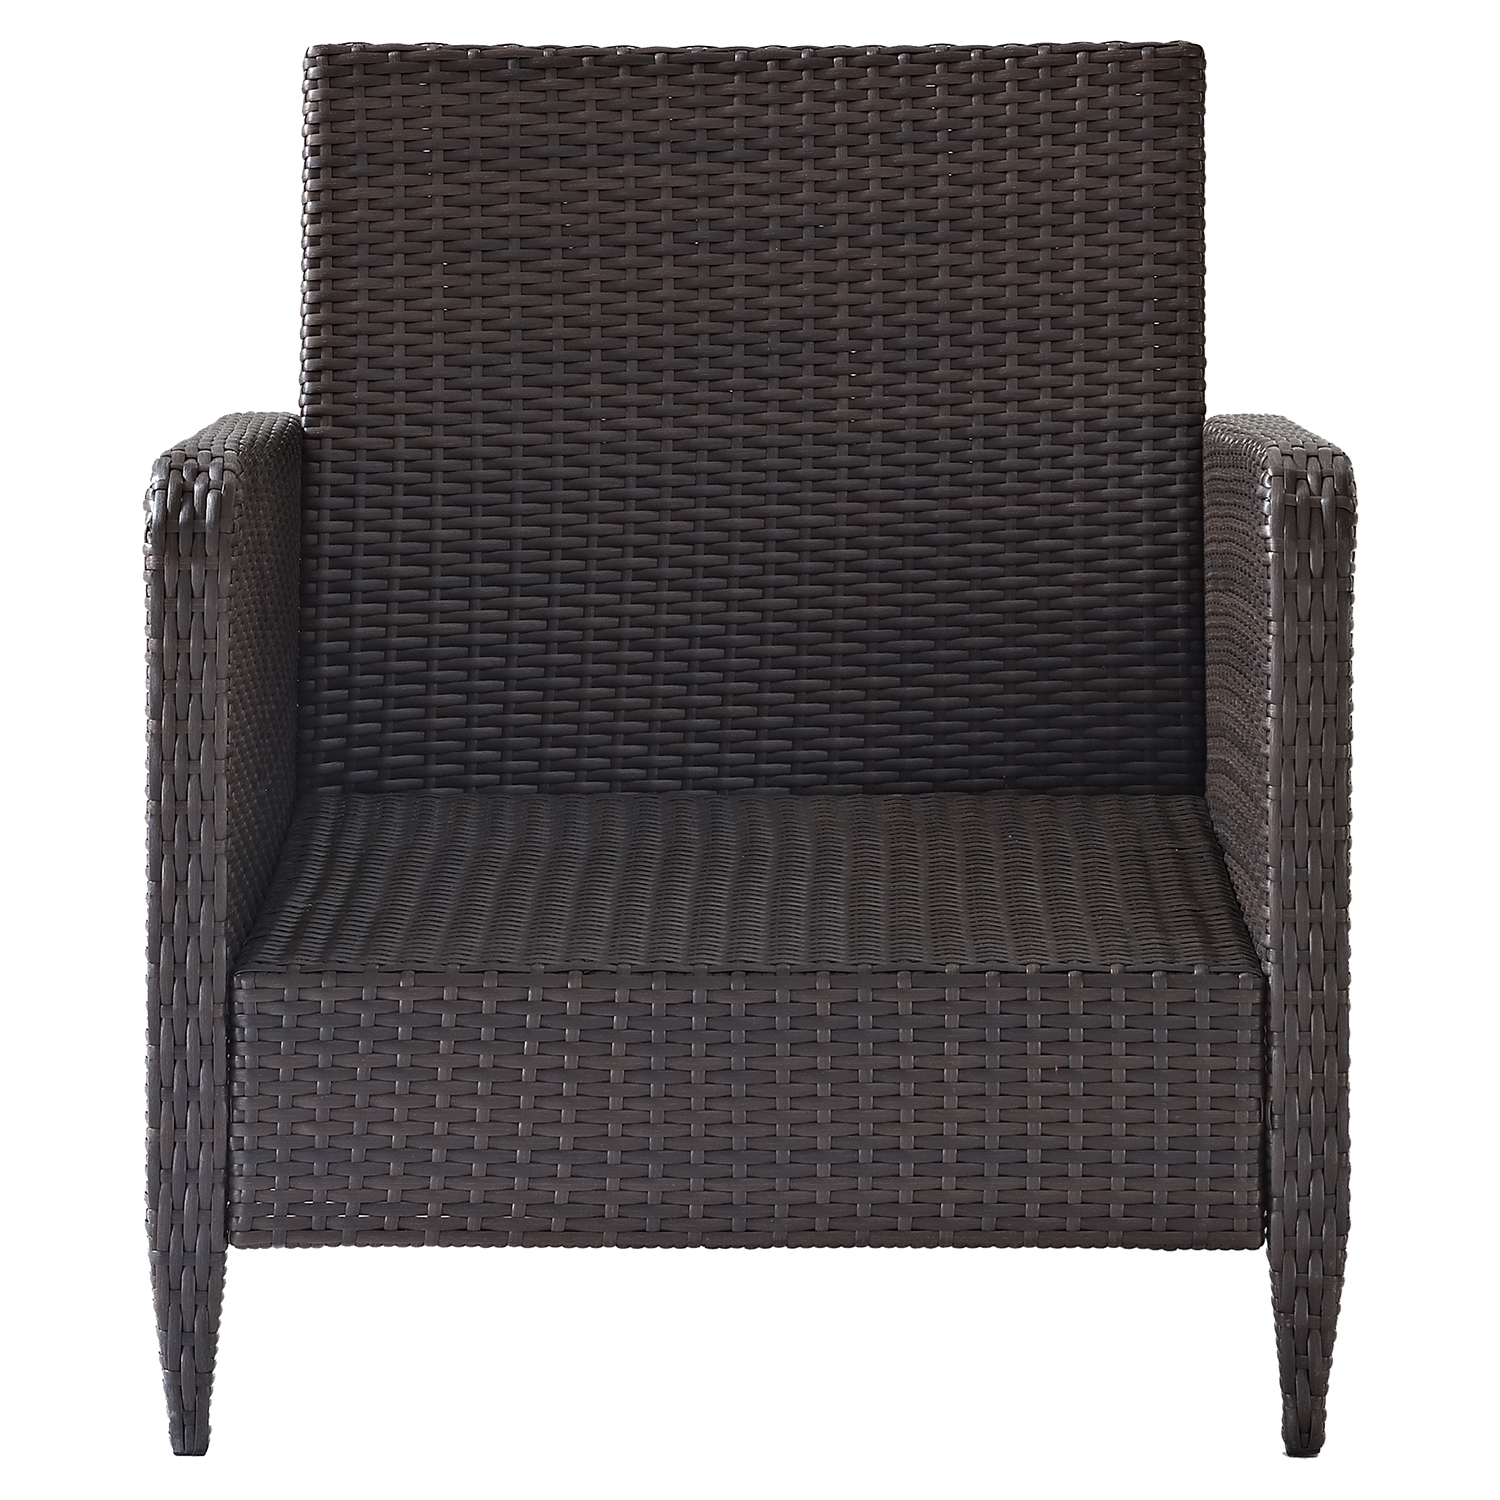 Kiawah Outdoor Wicker Arm Chair with Sangria Cushions - CROS-CO7118-BR